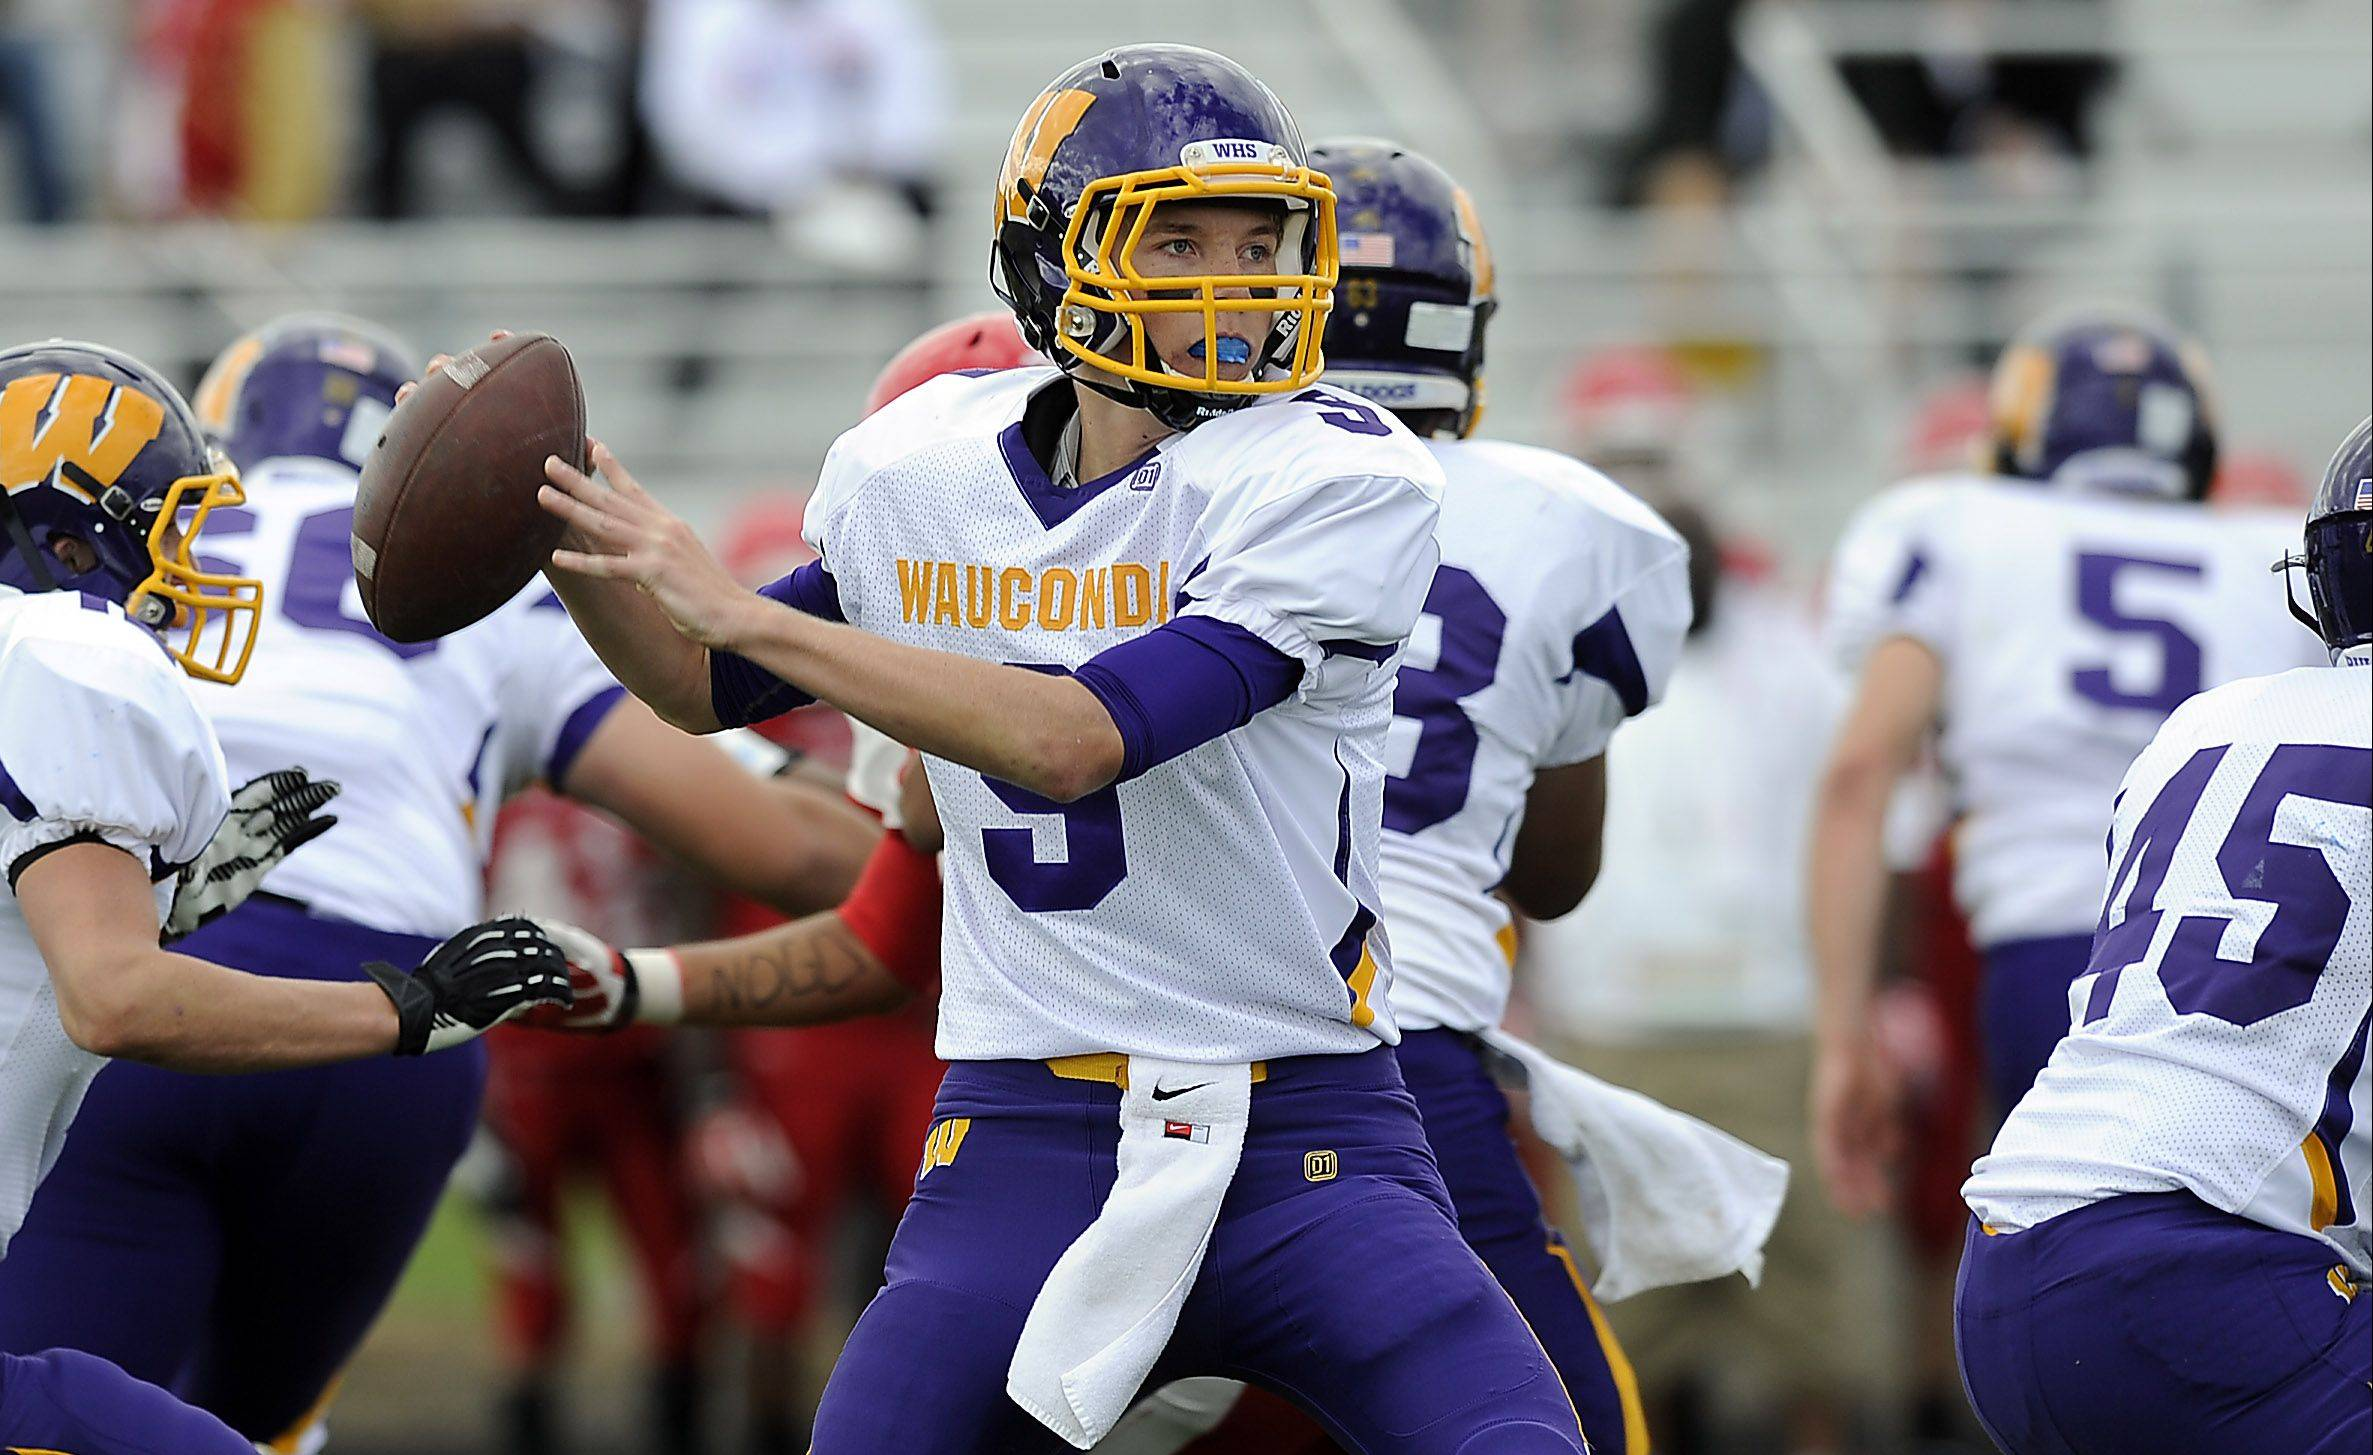 Wauconda's Kevin Malisheski looks for a receiver downfield and fires to Josh Anderson in the first half at North Chicago on Saturday.